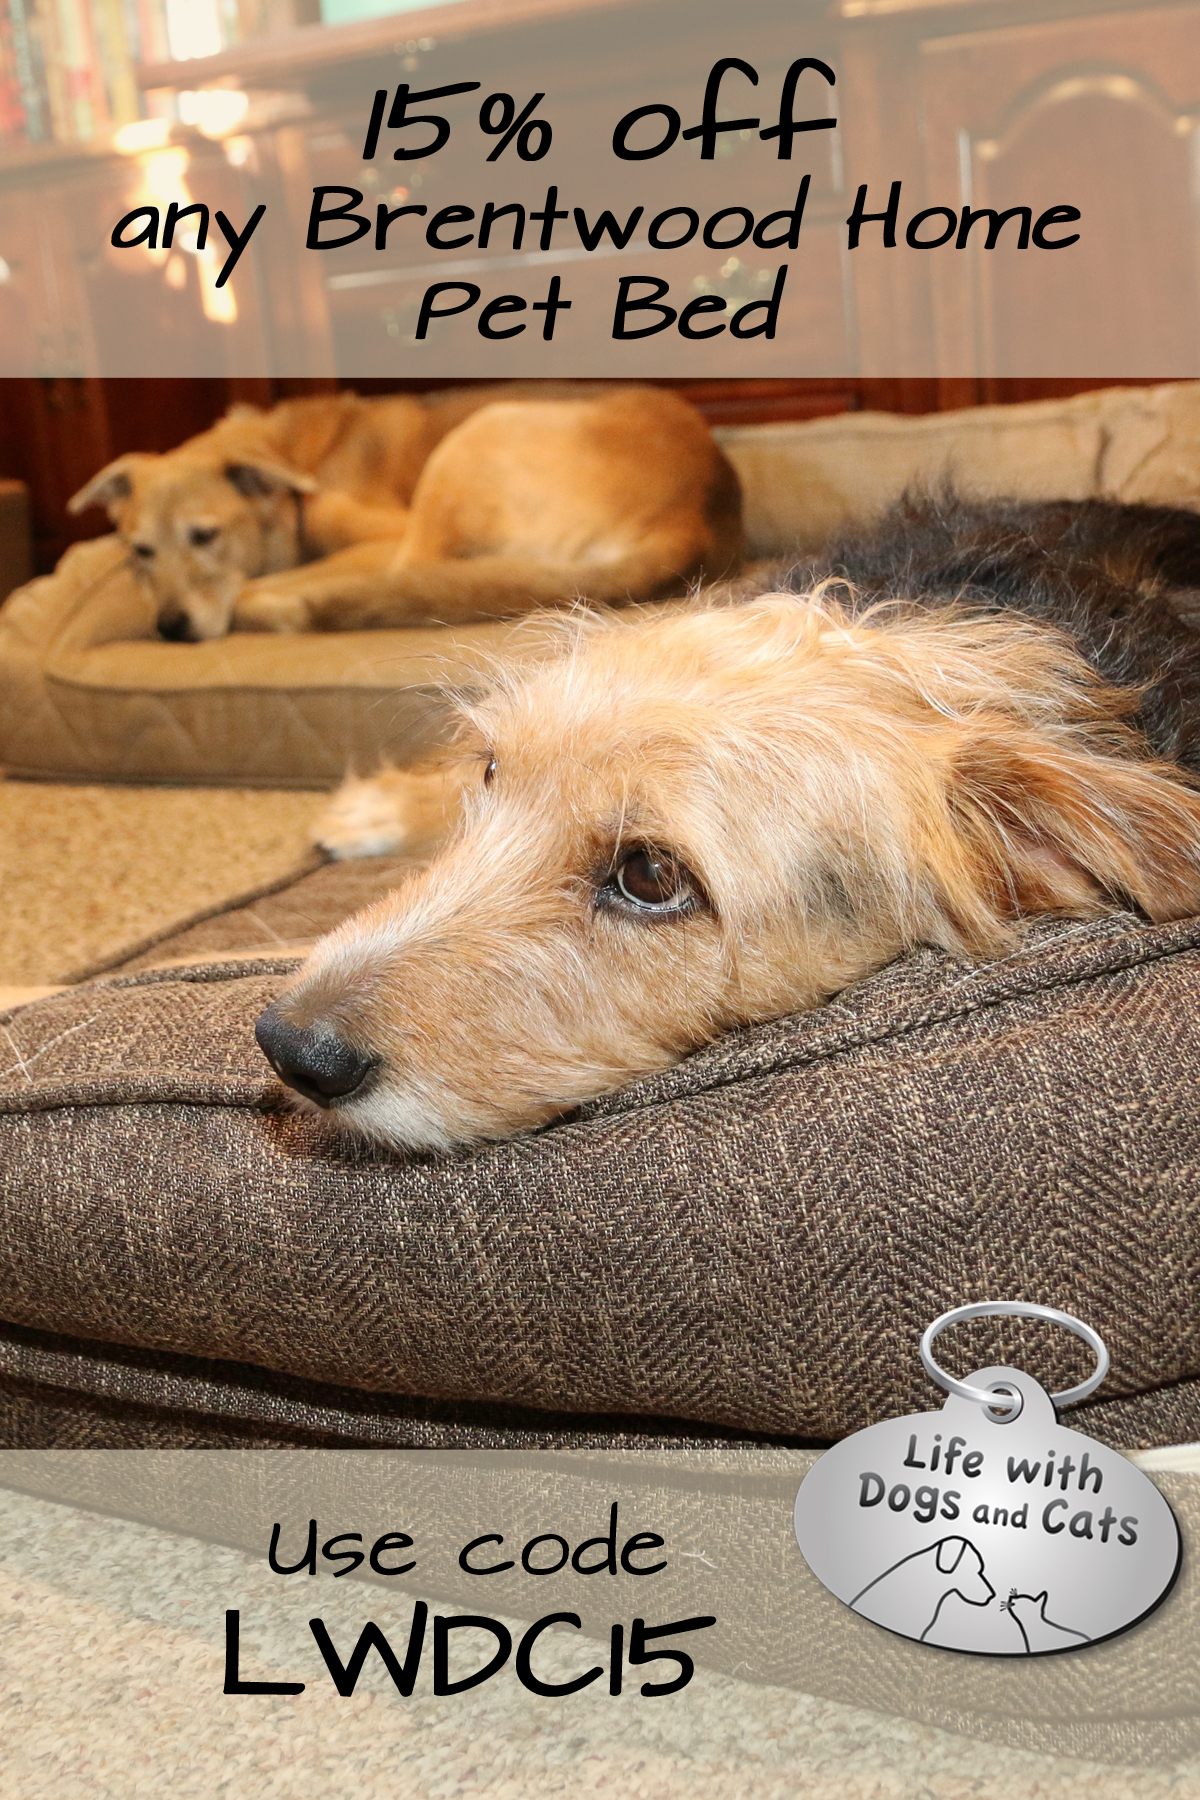 15% off Brentwood Home Pet bed code LWDC15